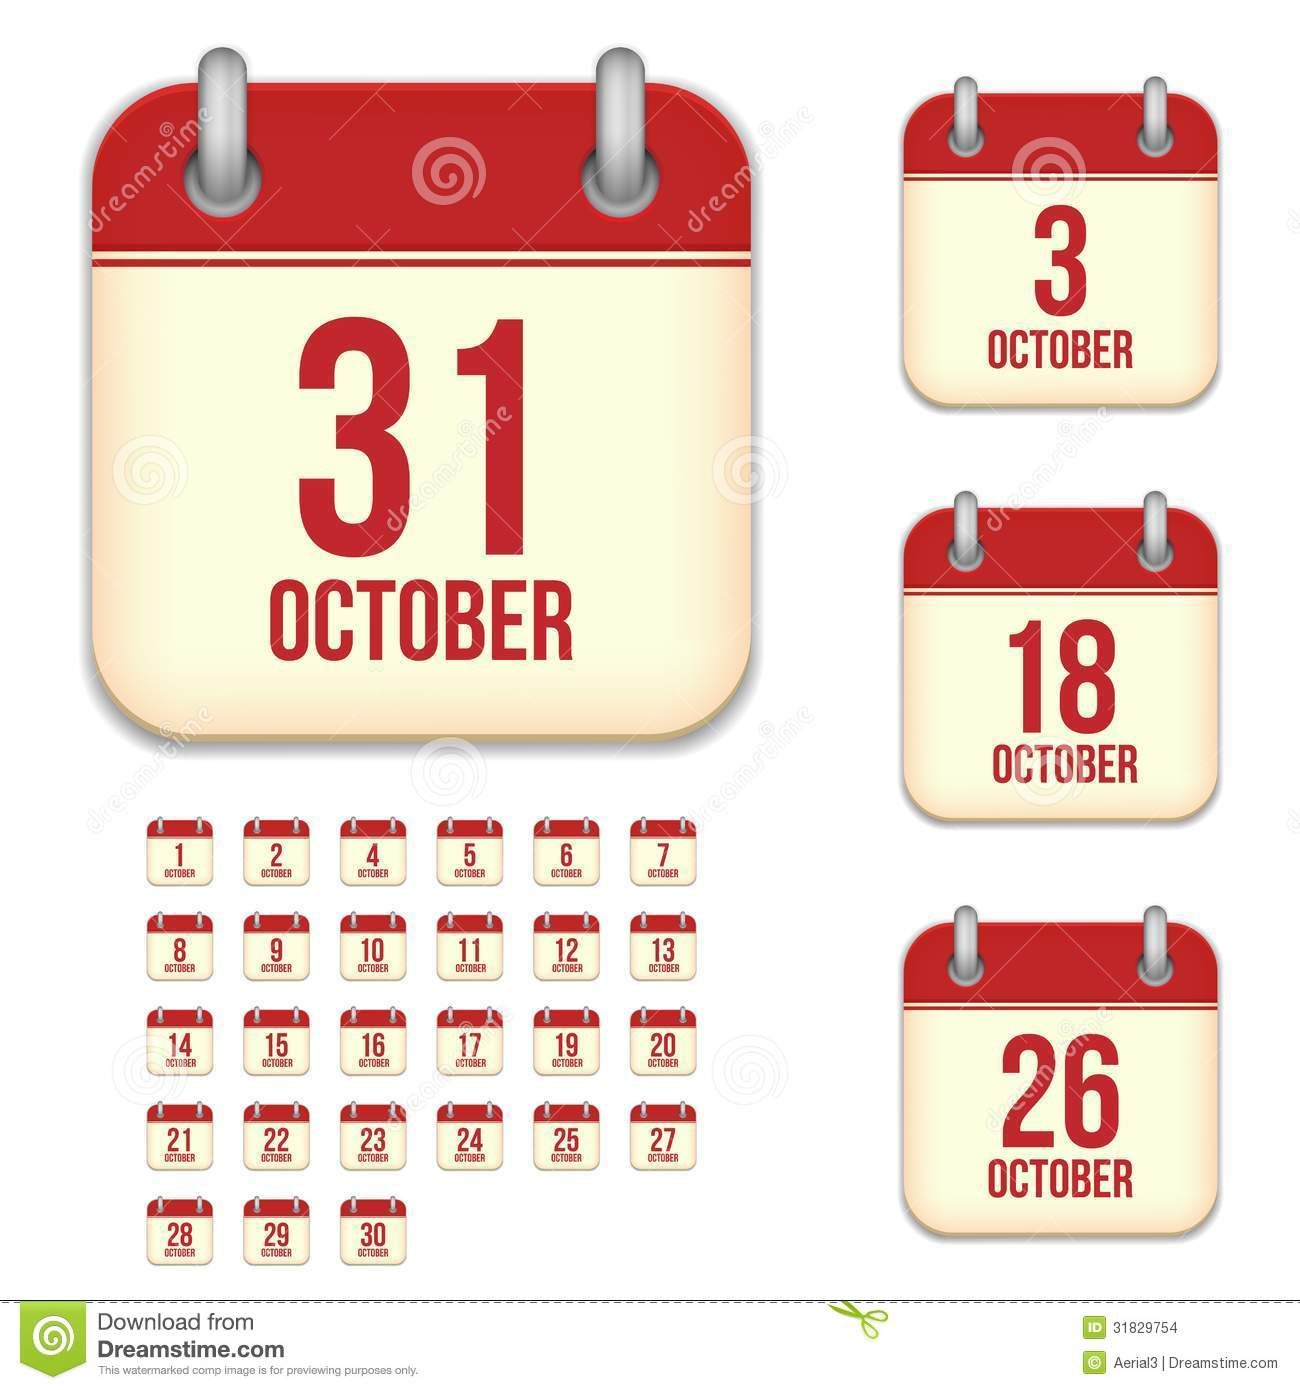 Month Calendar Vector Why Is January Month In Java Calendar Stack Overflow October Vector Calendar Icons Stock Images Image 31829754